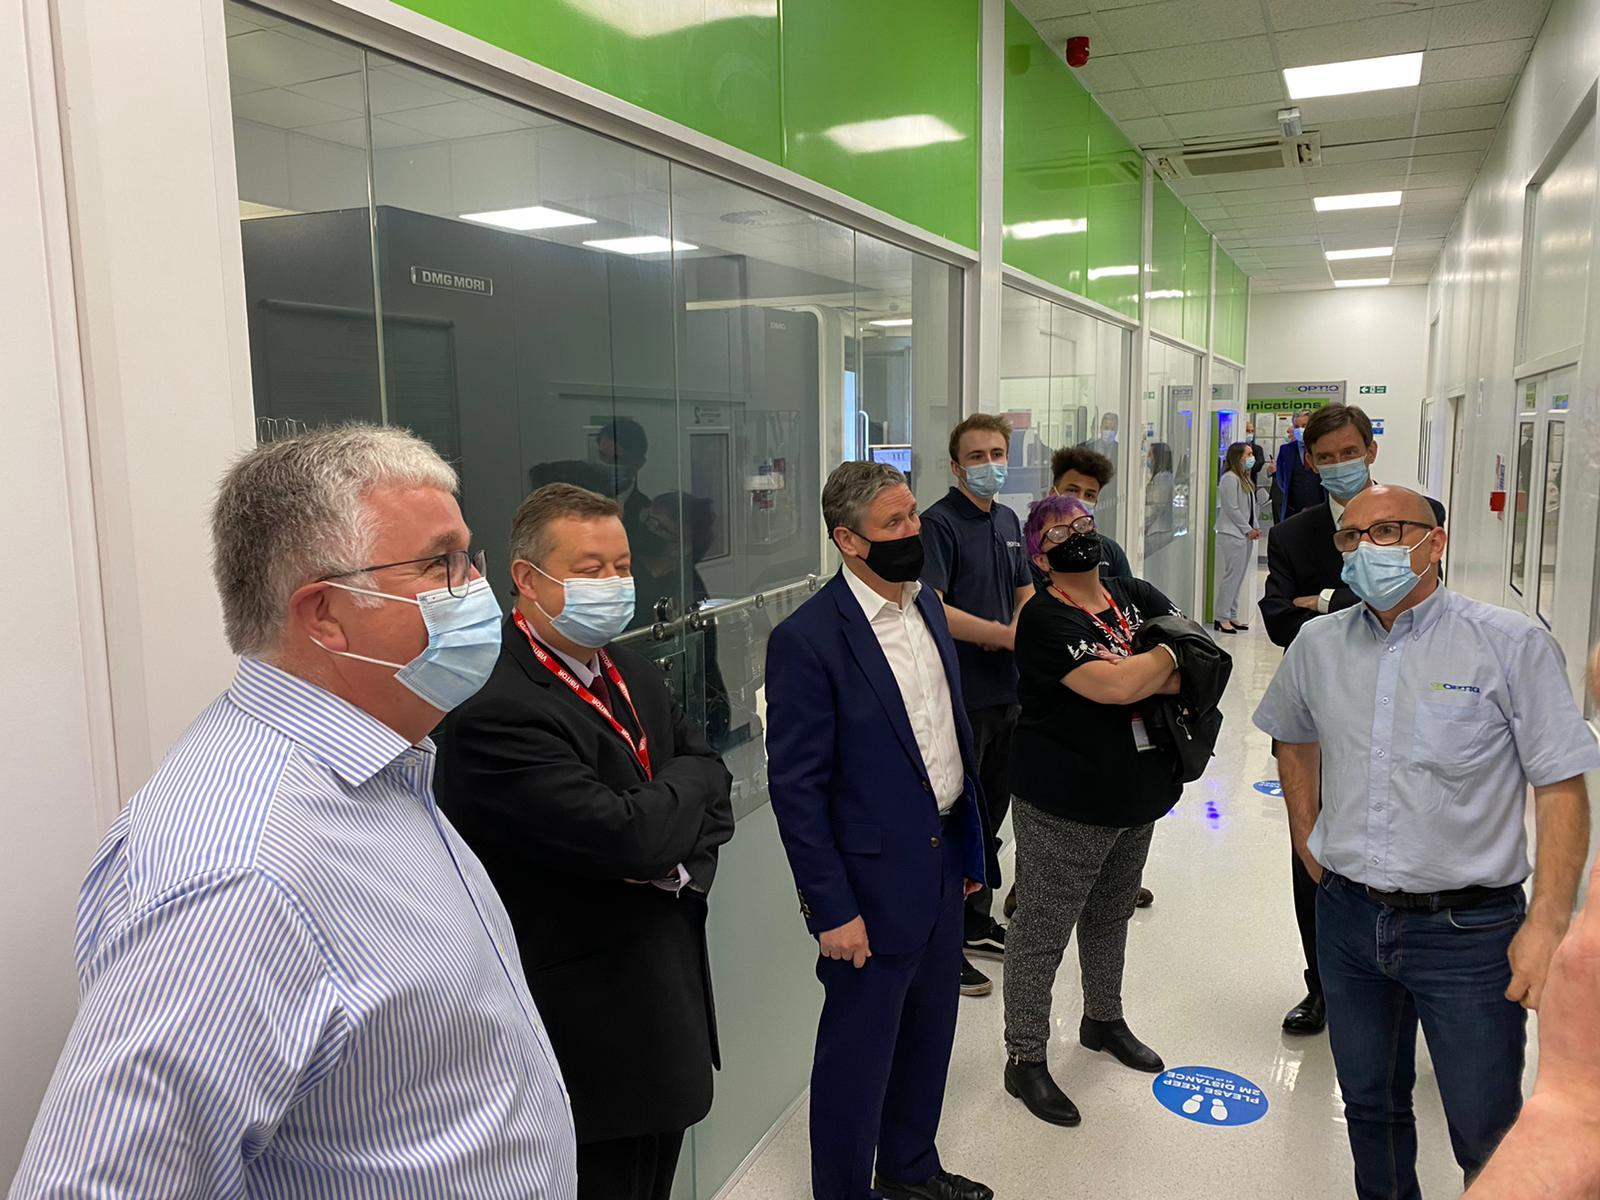 Labour leader Sir Keir Starmer paid a visit to the Qioptiq in Bodelwyddan. Pictures: Welsh Labour